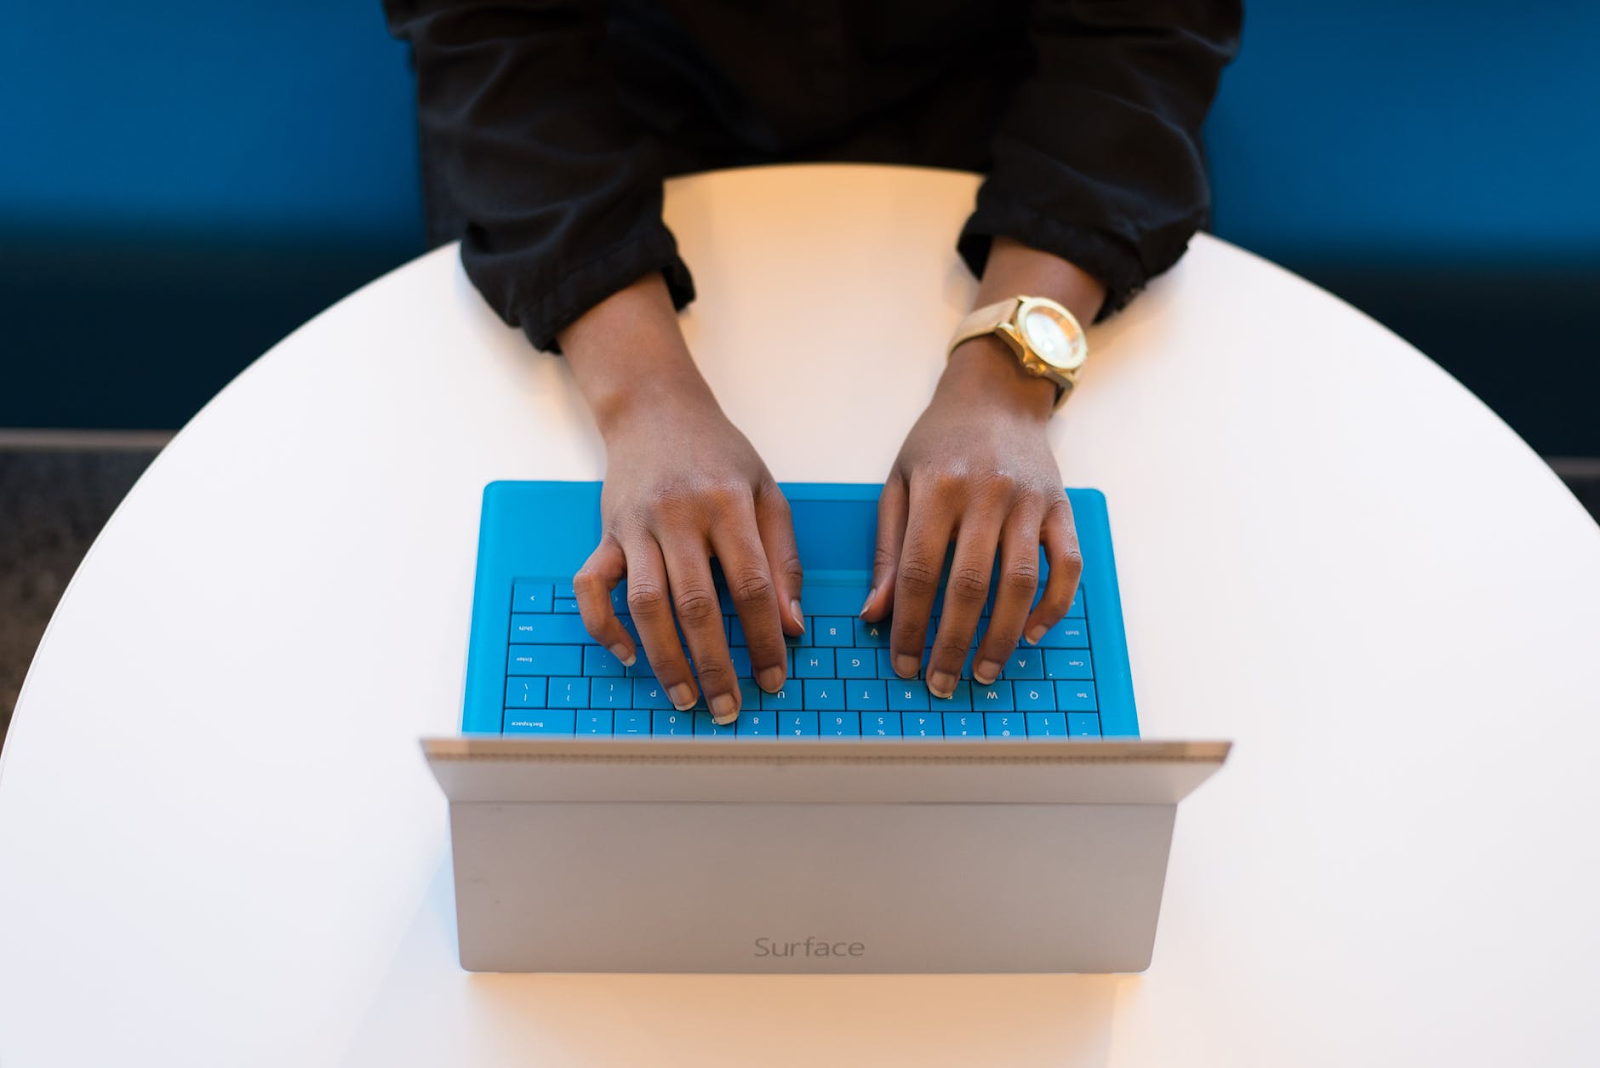 a person typing on a word processor